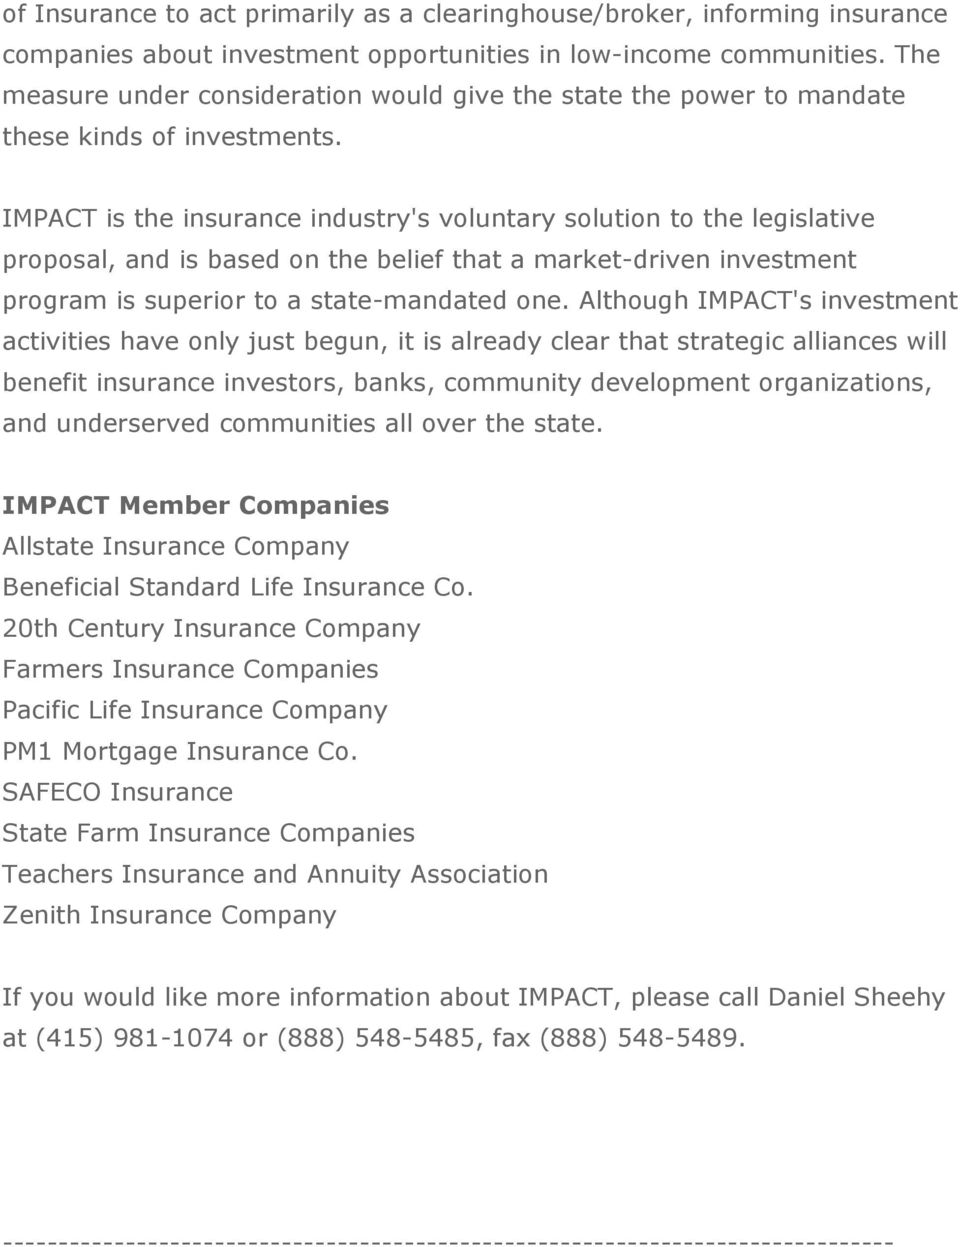 IMPACT is the insurance industry's voluntary solution to the legislative proposal, and is based on the belief that a market-driven investment program is superior to a state-mandated one.